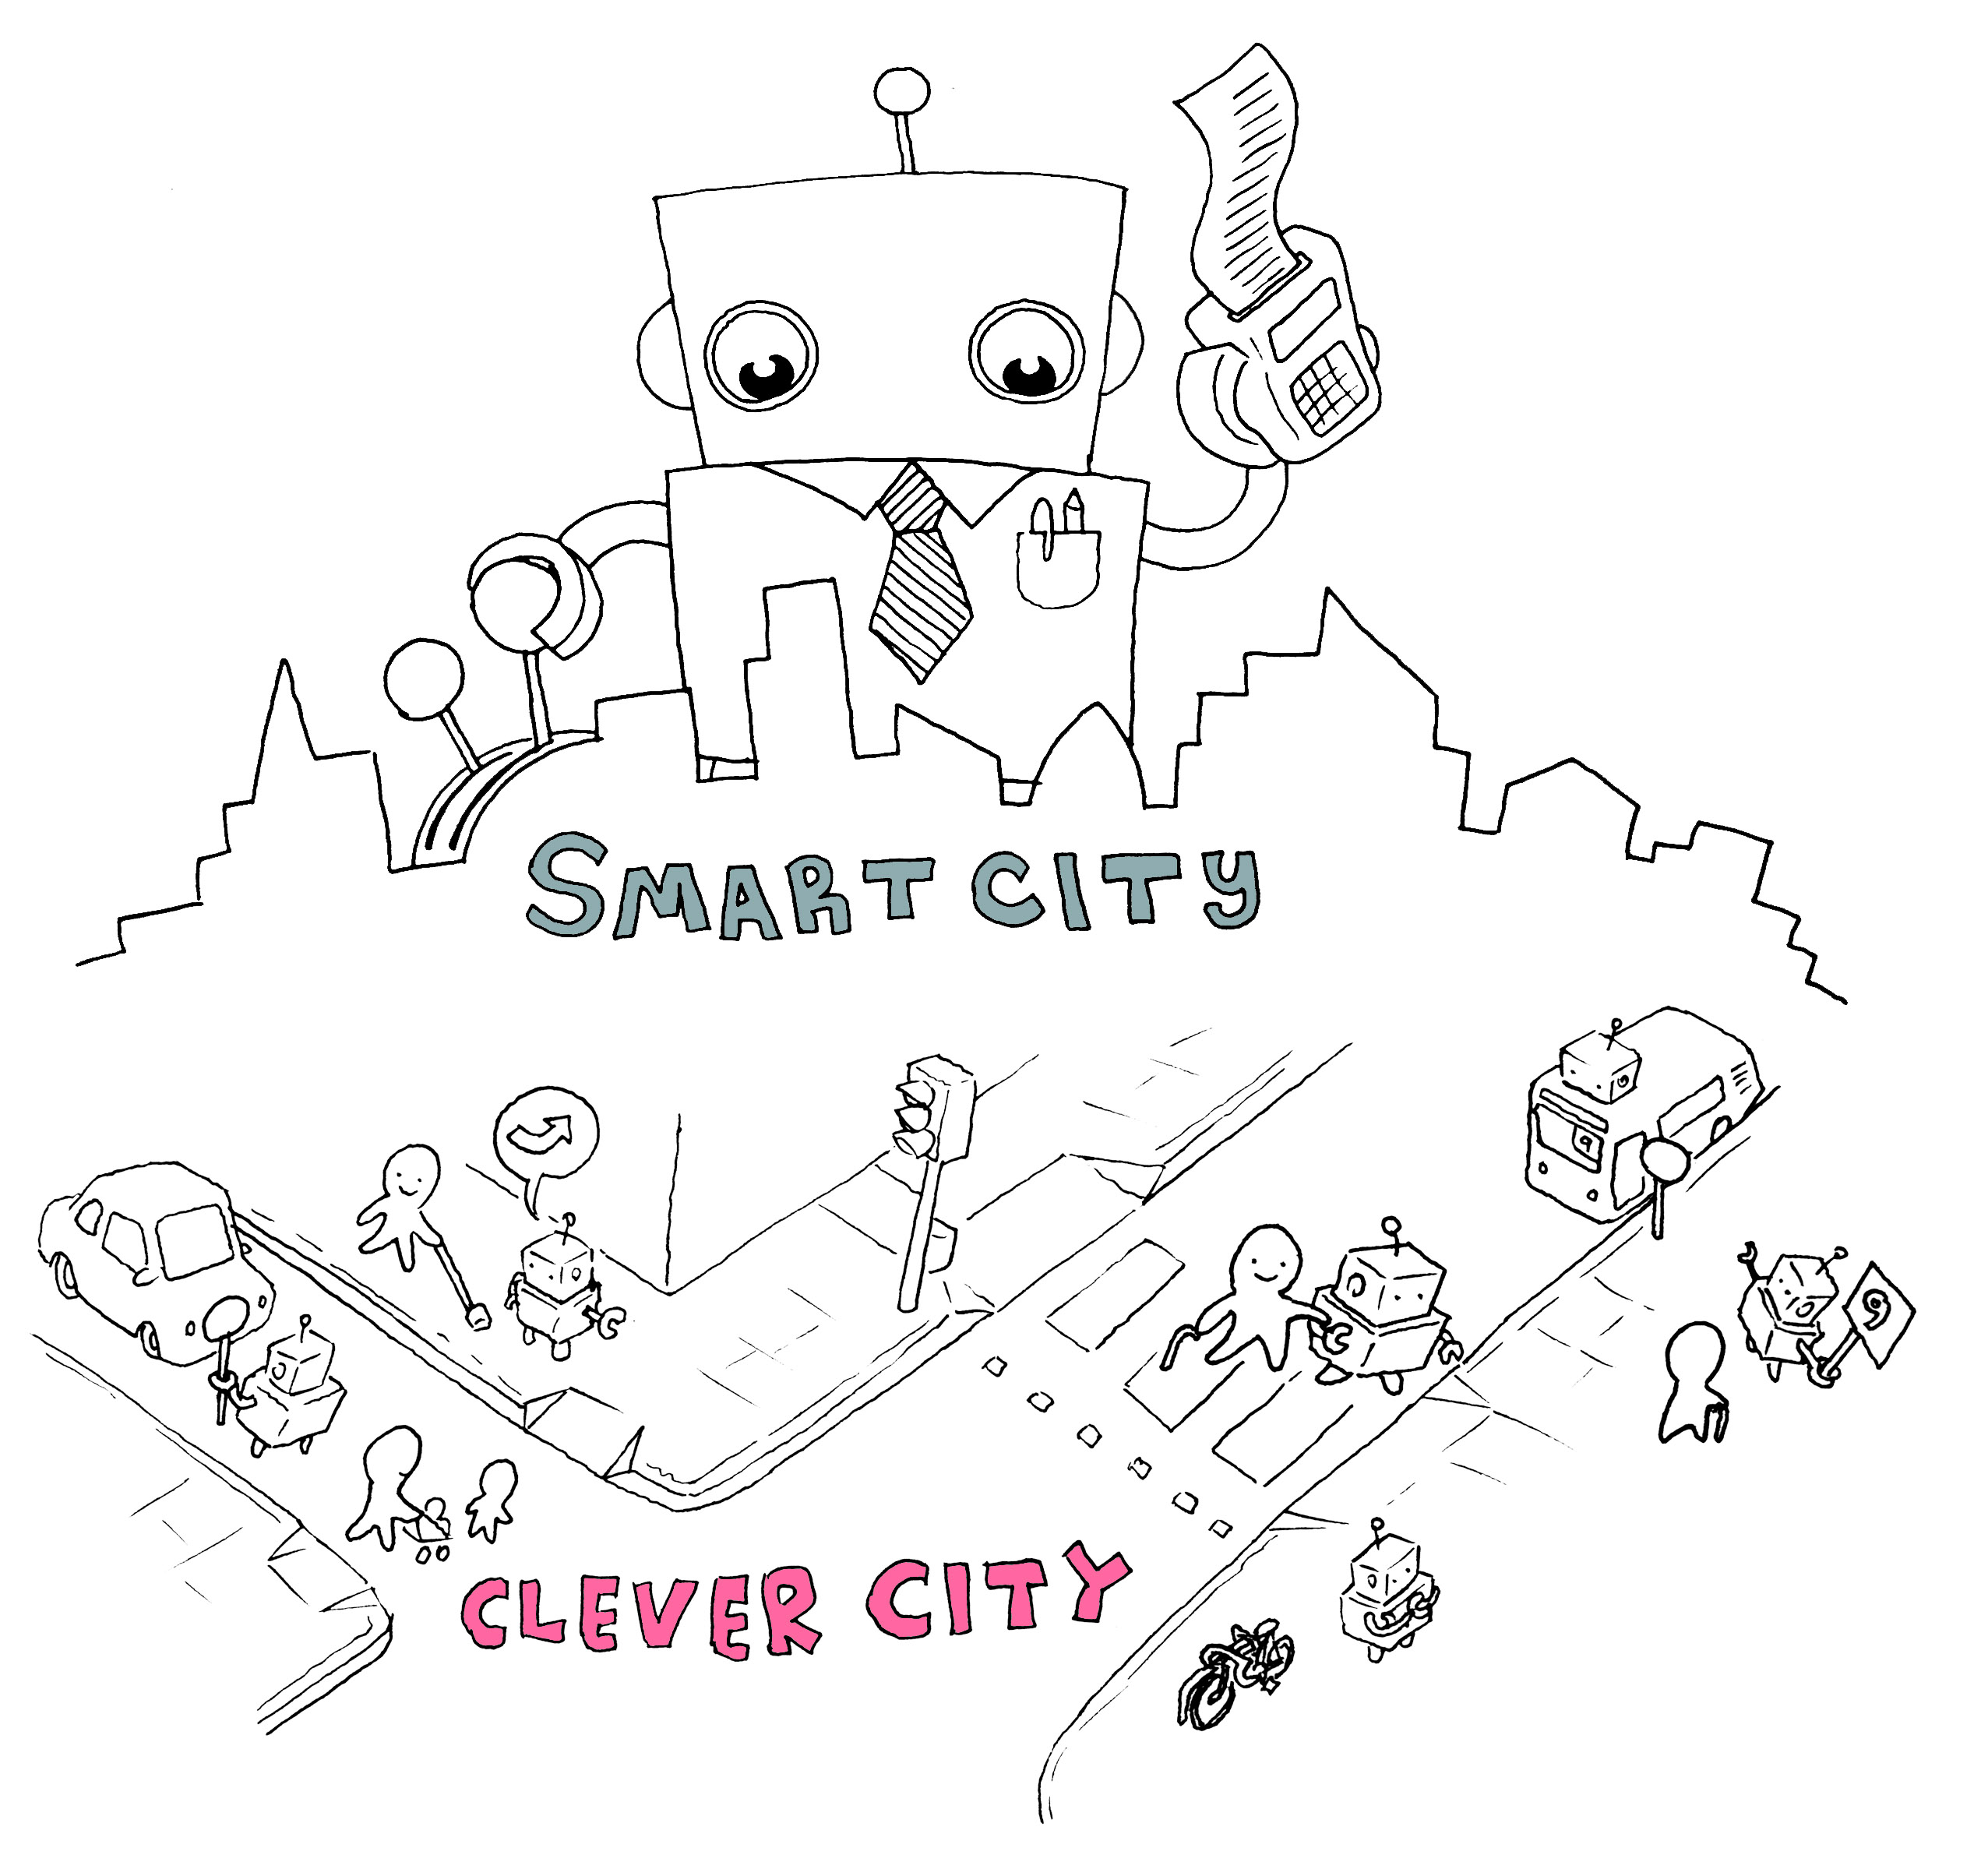 Drawing of a large robot looming over the skyline with a calculator and a lever, labelled Smart Sity. Below it, at street level, some citizens are being assisted by a number of small robots. This scene is labelled Clever City